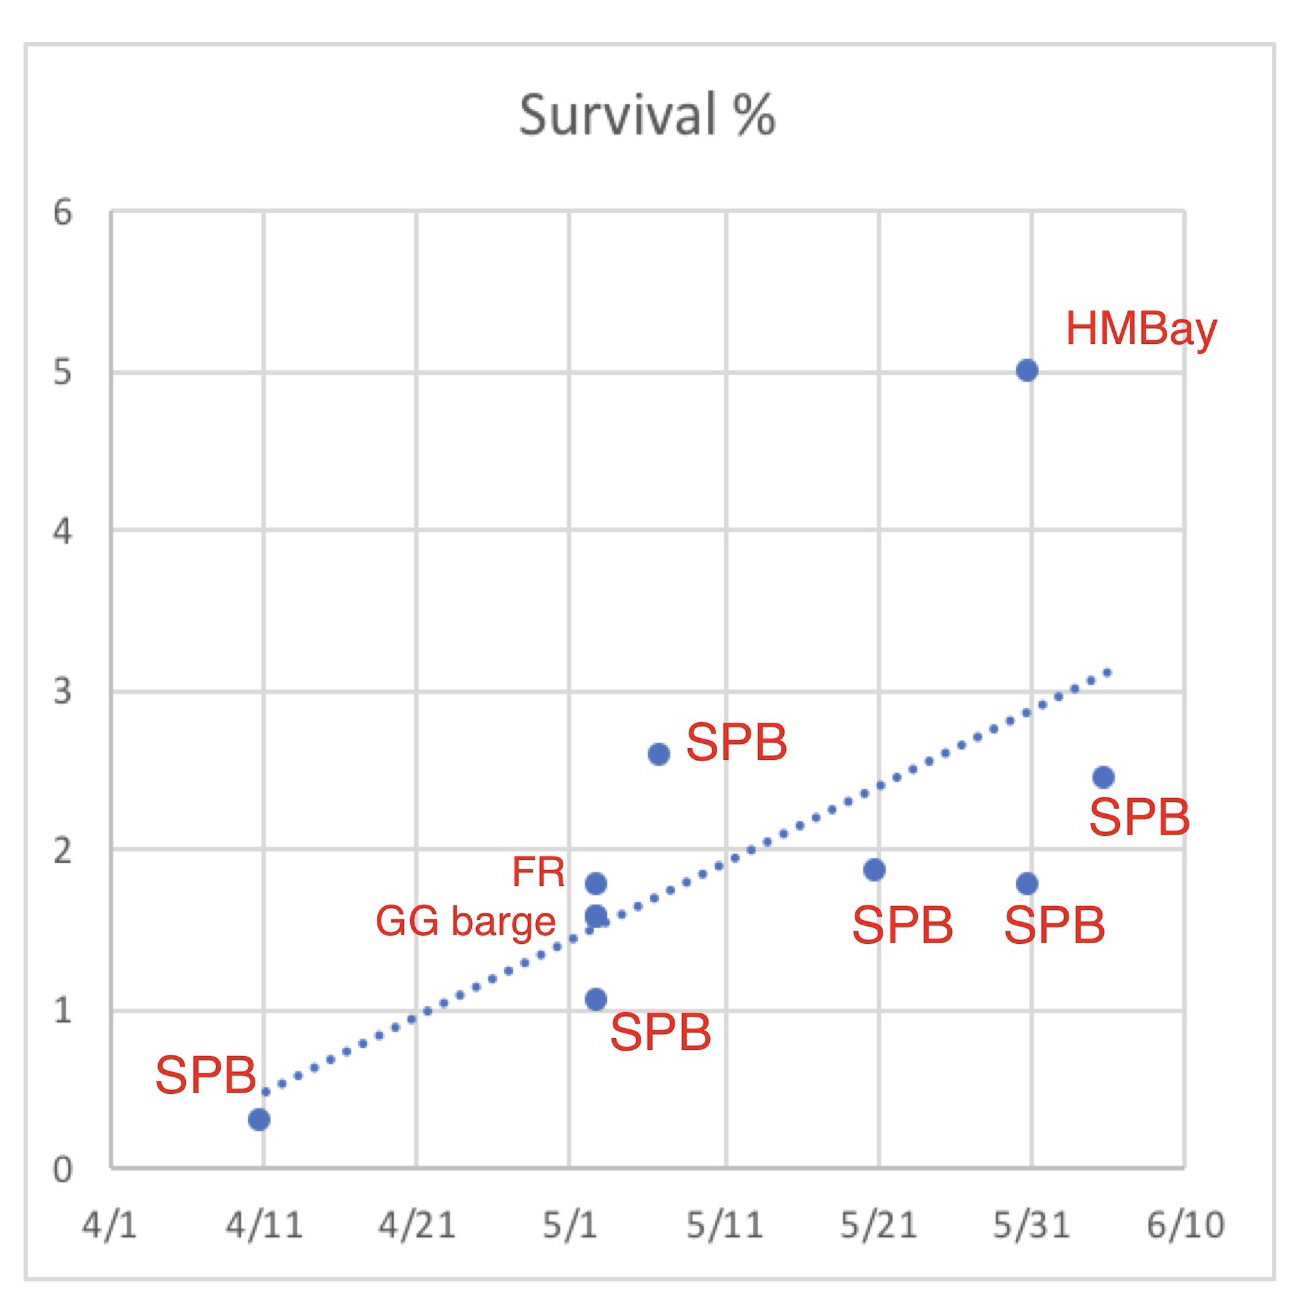 Figure 1. Survival rates for brood year 2011 Feather River Hatchery smolts released in spring 2012. GG is Golden Gate. SPB is San Pablo Bay. FR is Feather River. HMBay is Half Moon Bay along the coast south of San Francisco.